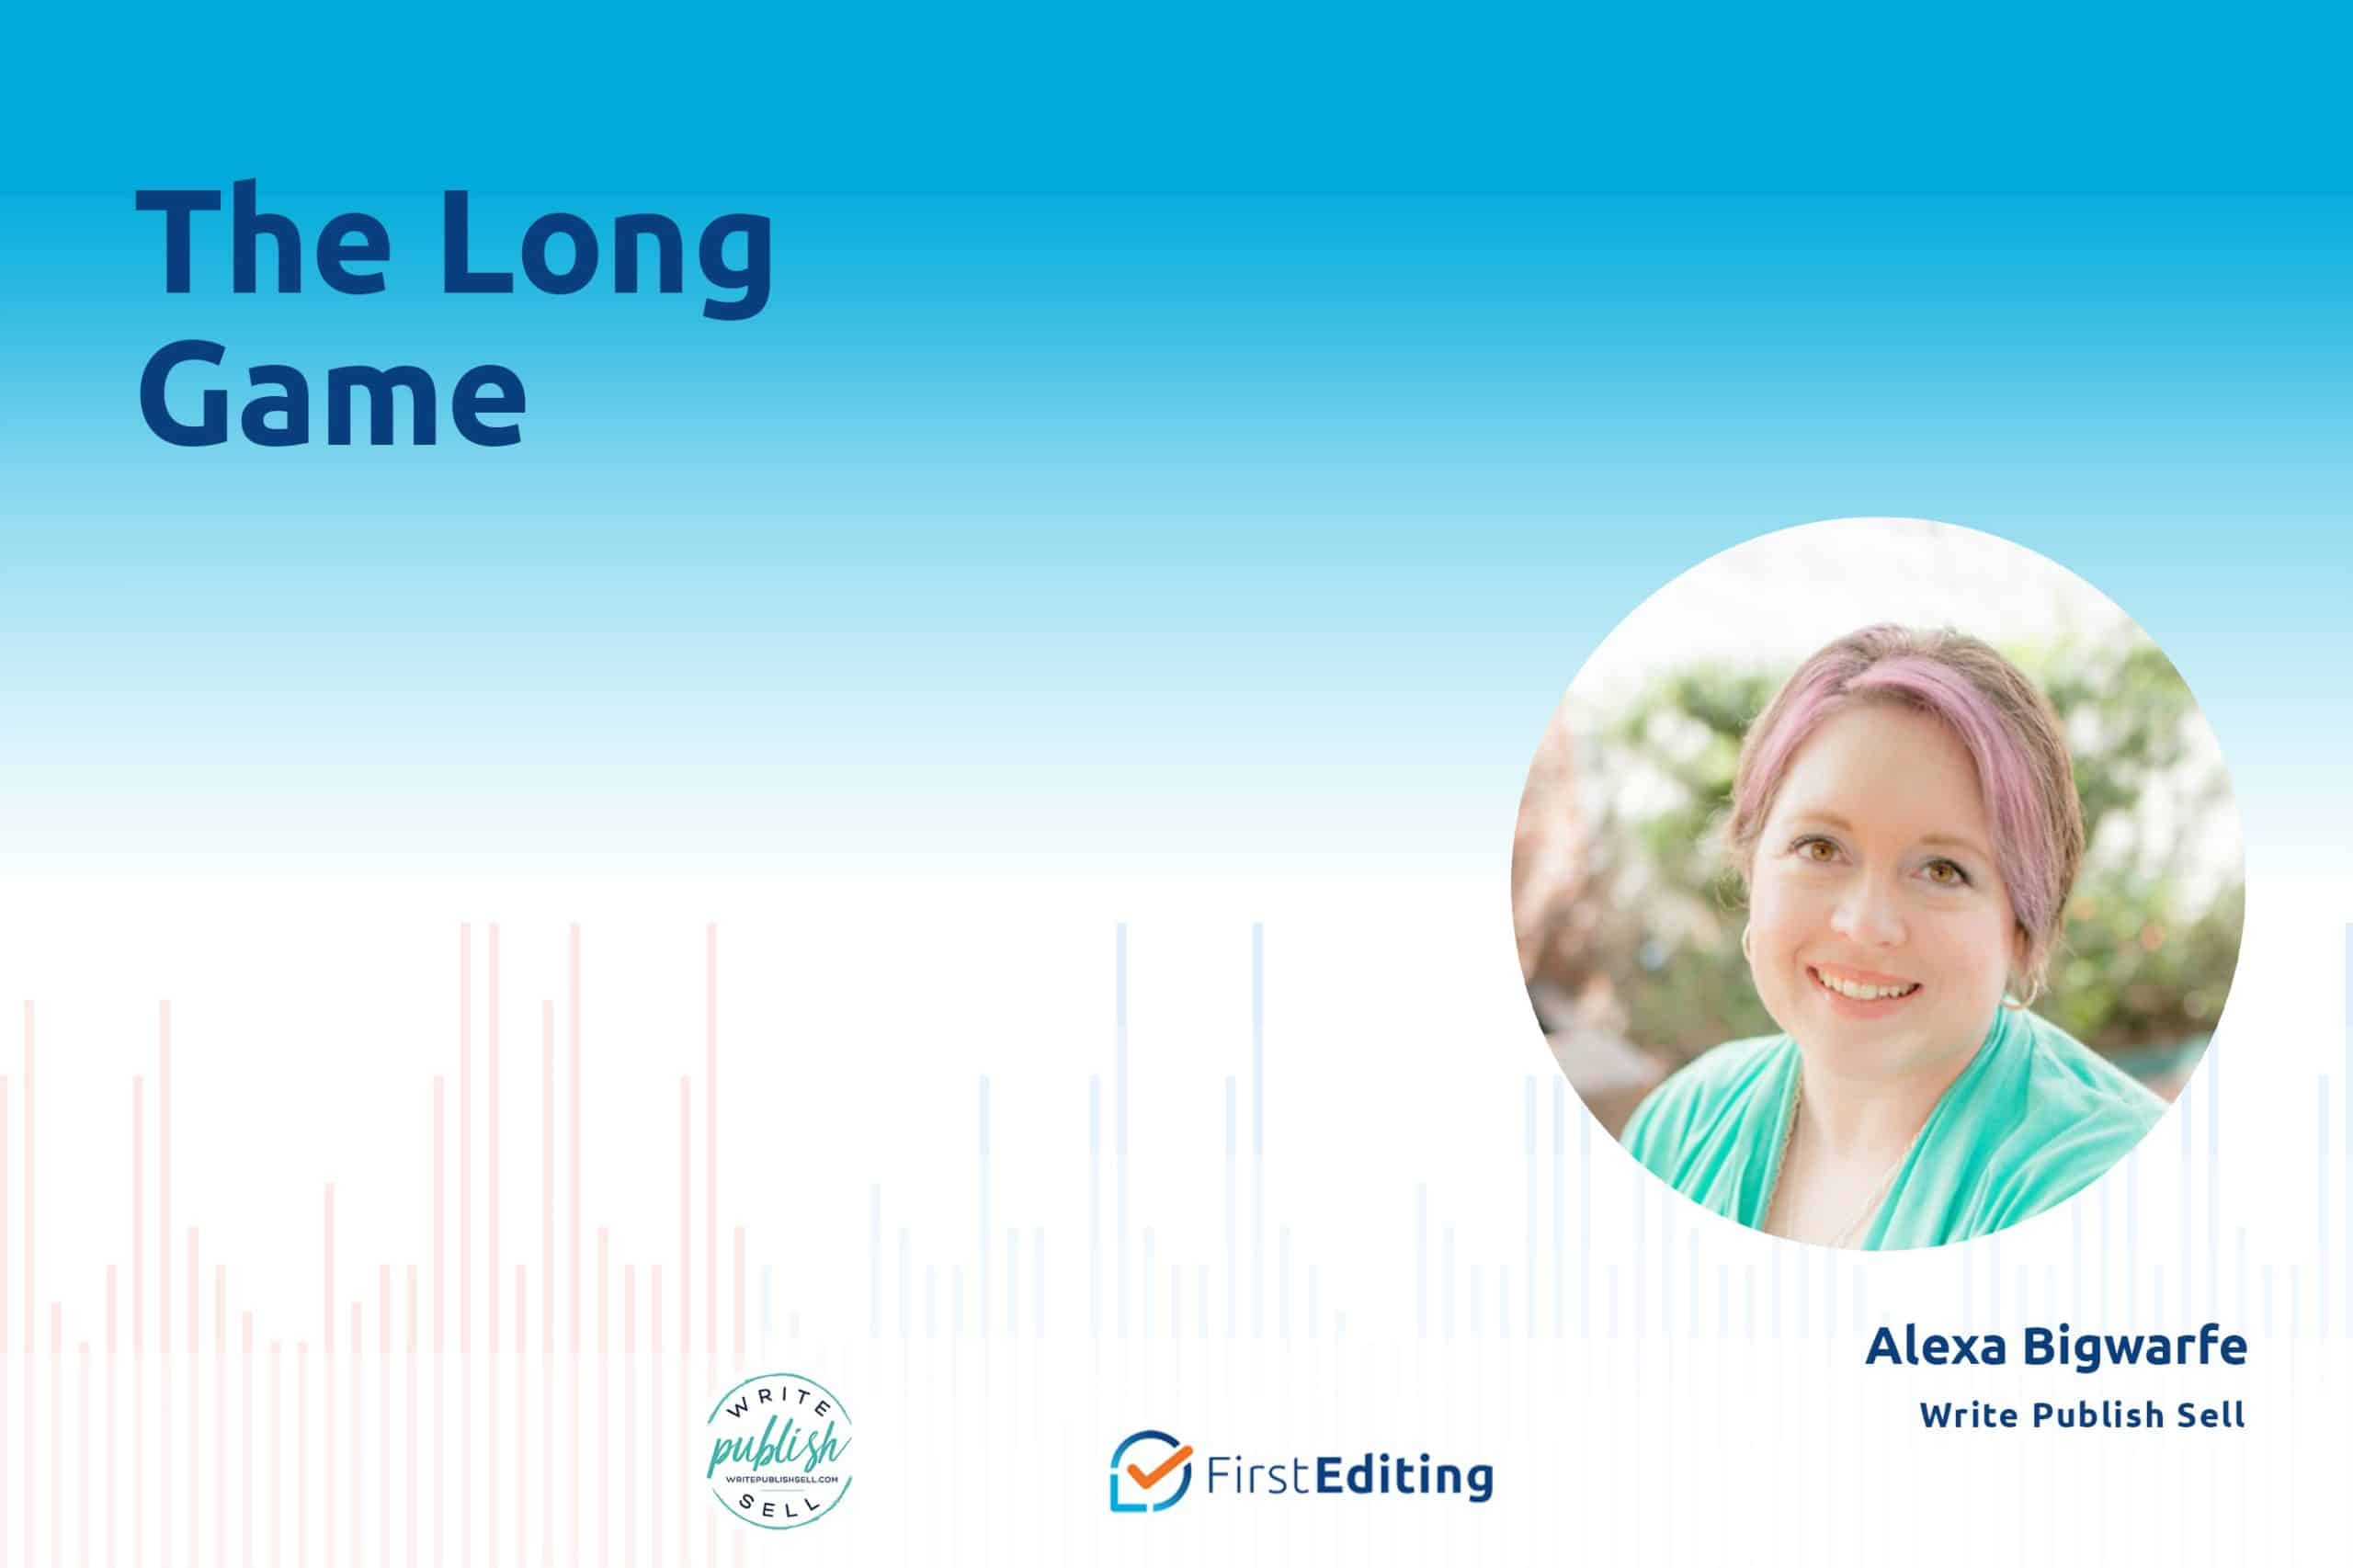 The Long Game with Alexa Bigwarfe